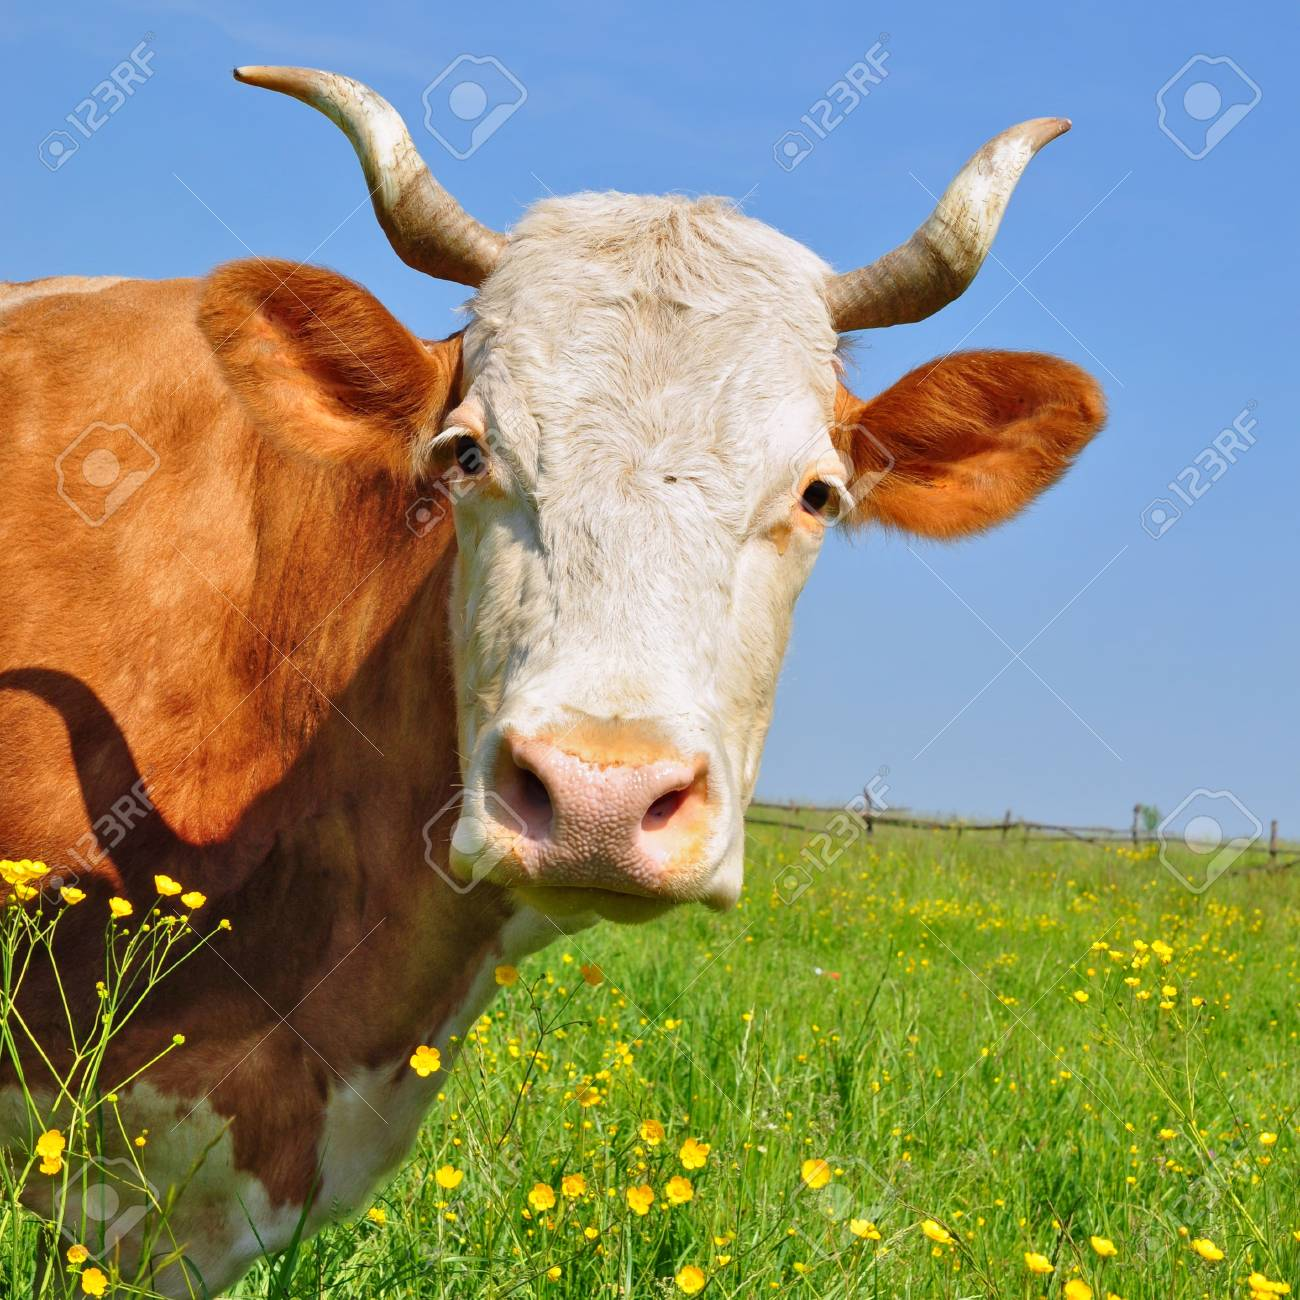 Head of a cow against a pasture Stock Photo - 13094316